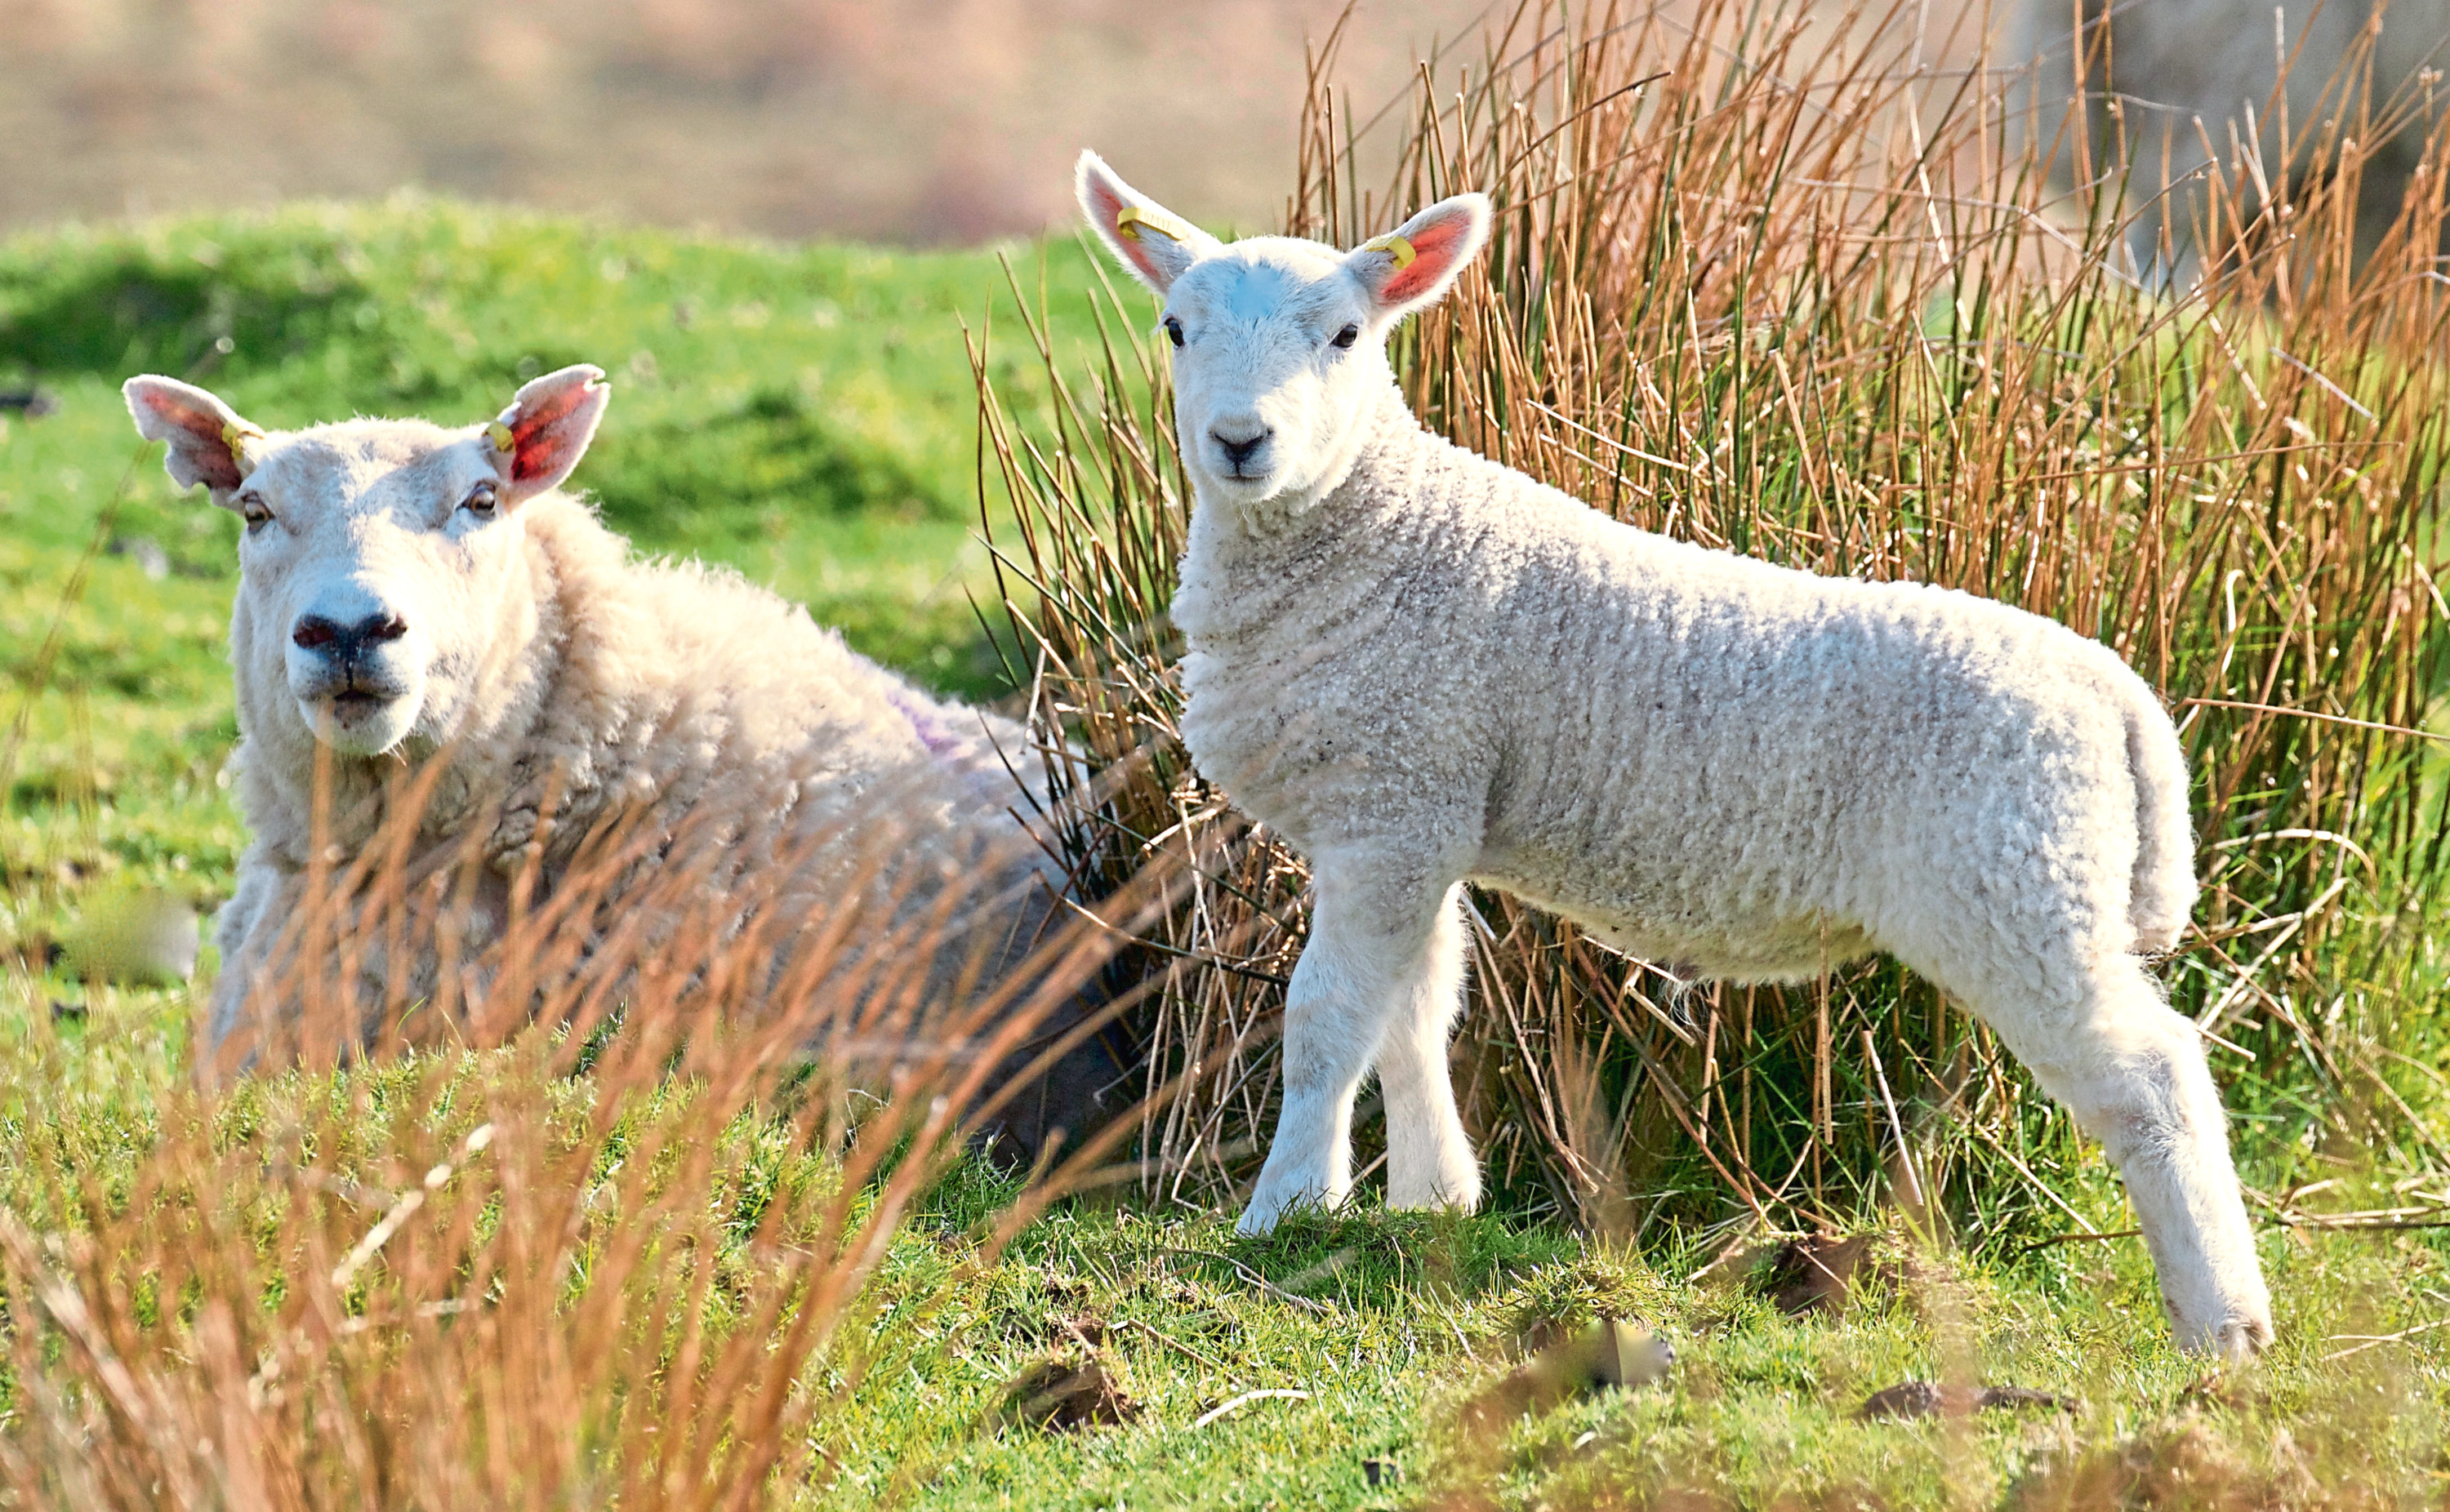 LFASS loan offer letters will be sent to more than 10,000 farmers and crofters.